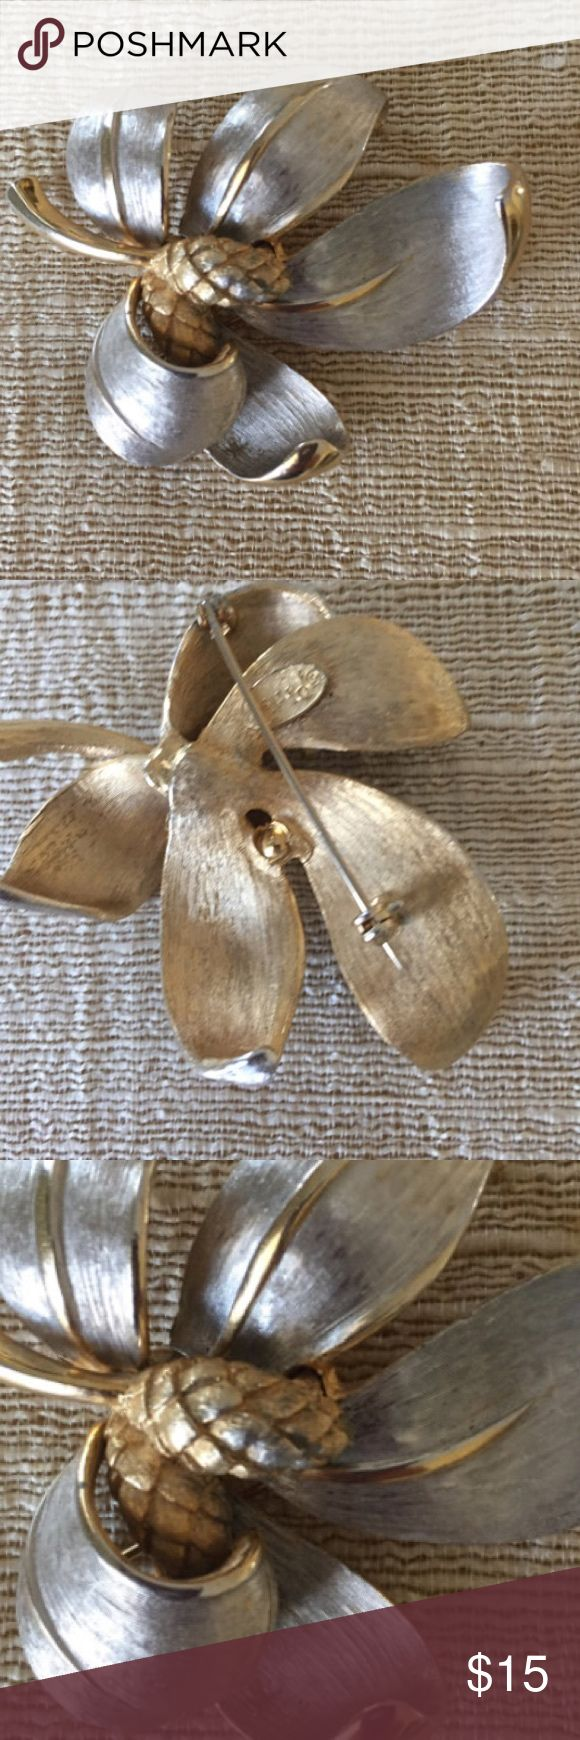 """Pastelli Vintage Leaf Brooch Brushed silver vintage leaf brooch Estate Brooch Signed Pastelli approximately 2.5"""" in length Brushed silver with gold tone accents From a Mississippi Estate Jewelry Brooches"""